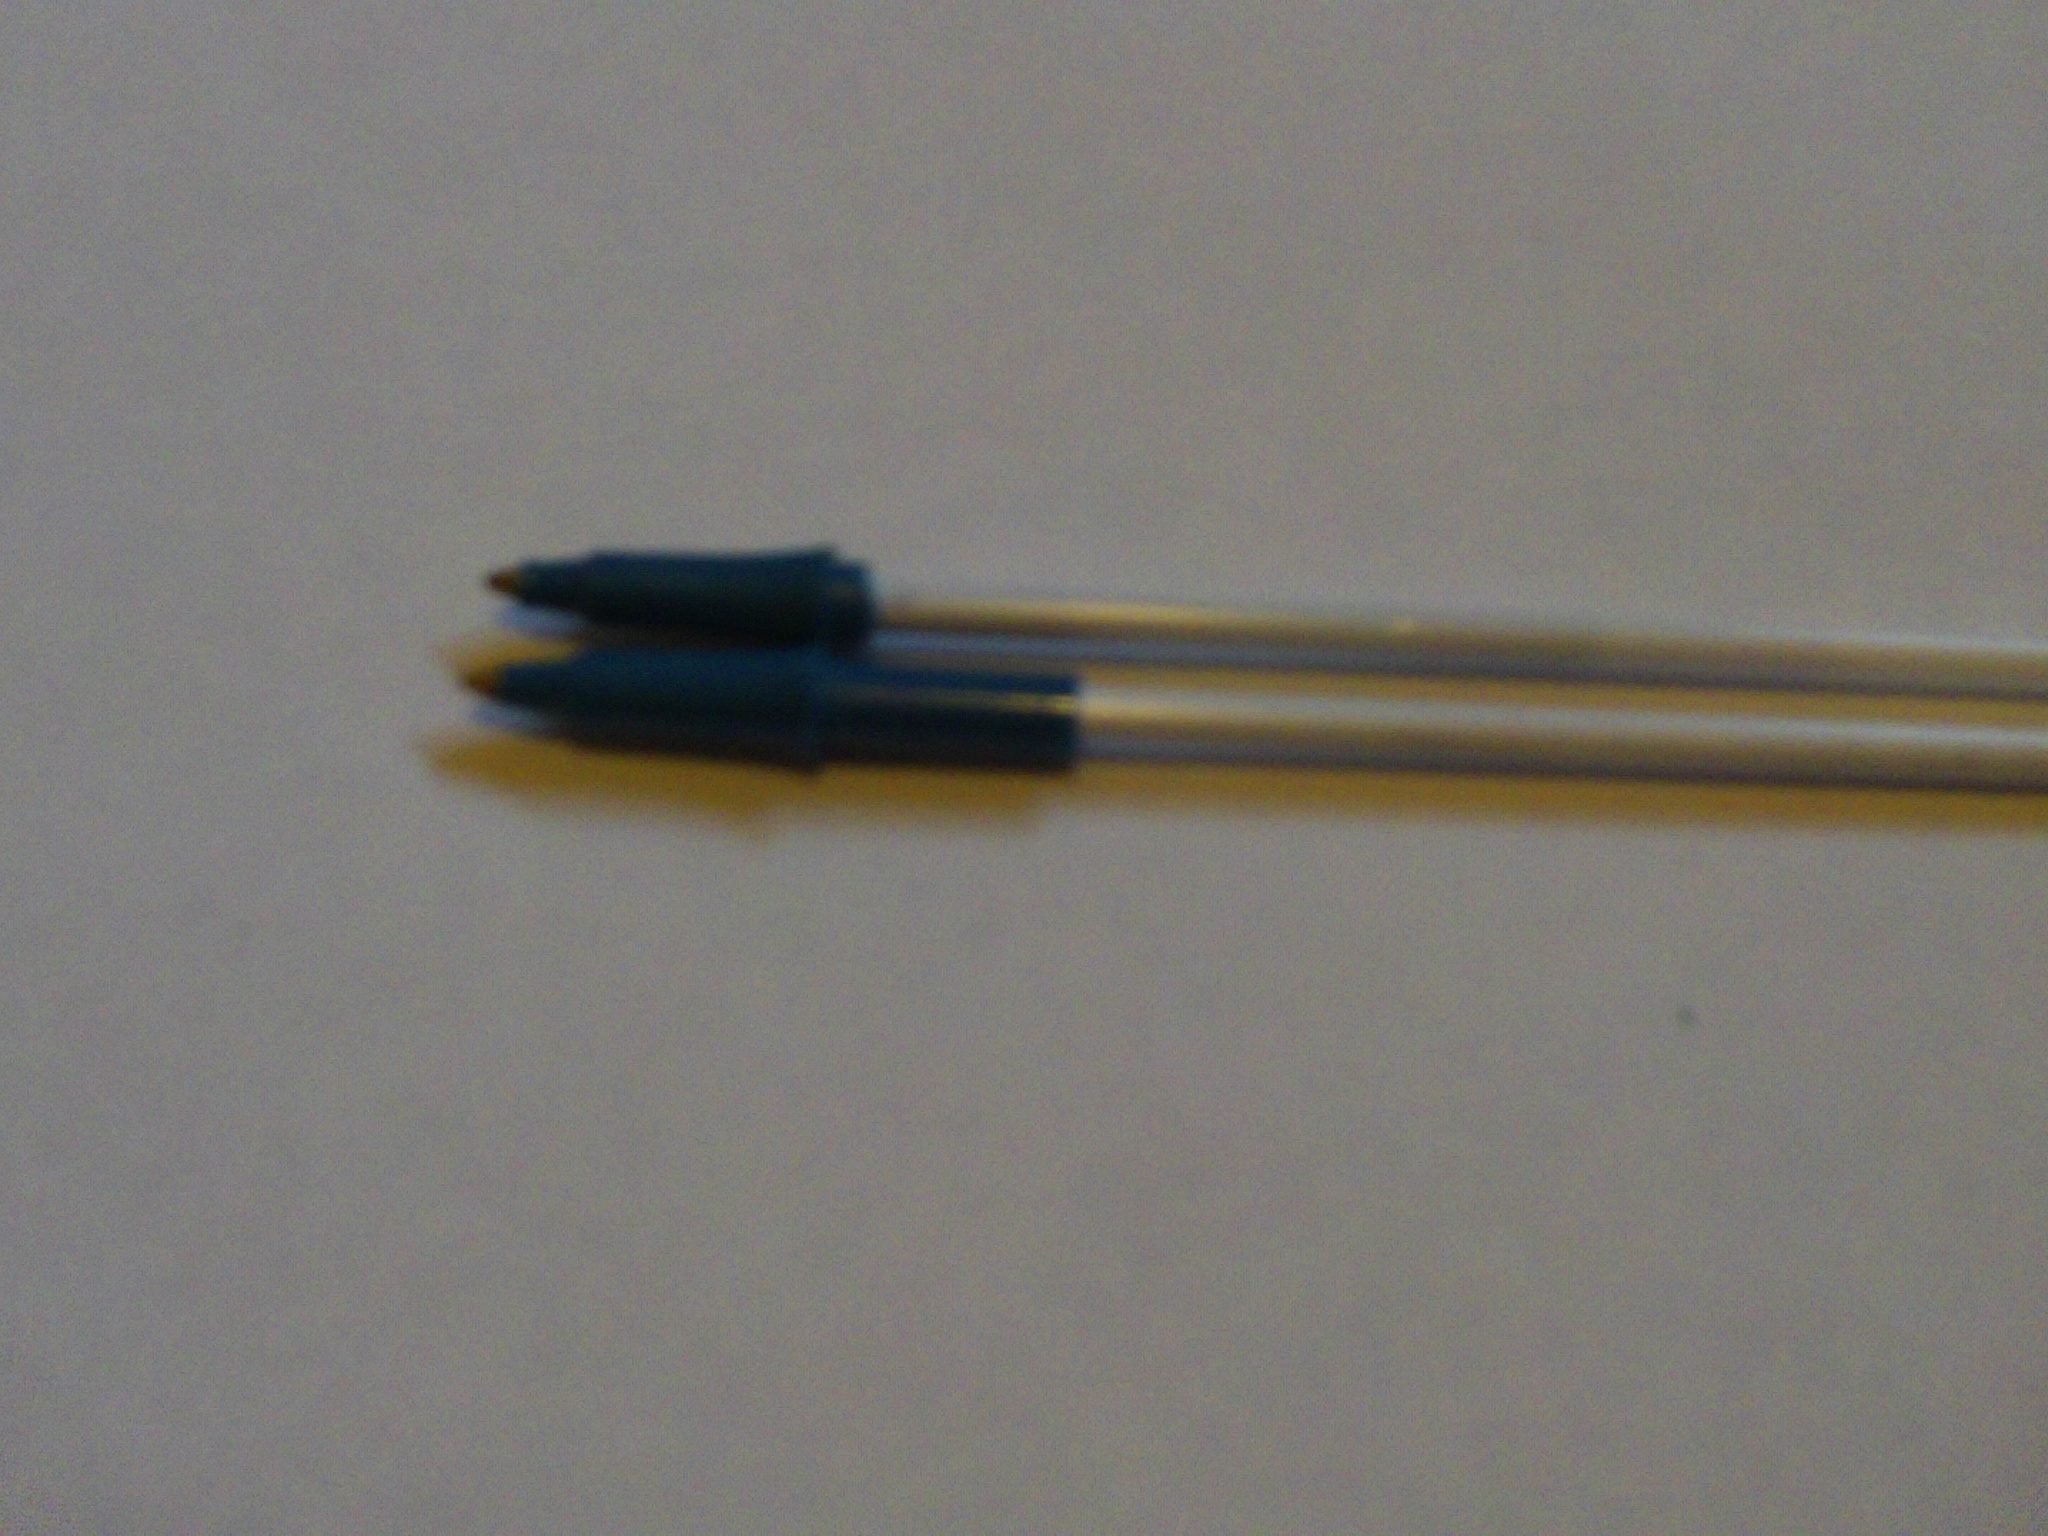 Picture of Five Minute Pen Prank